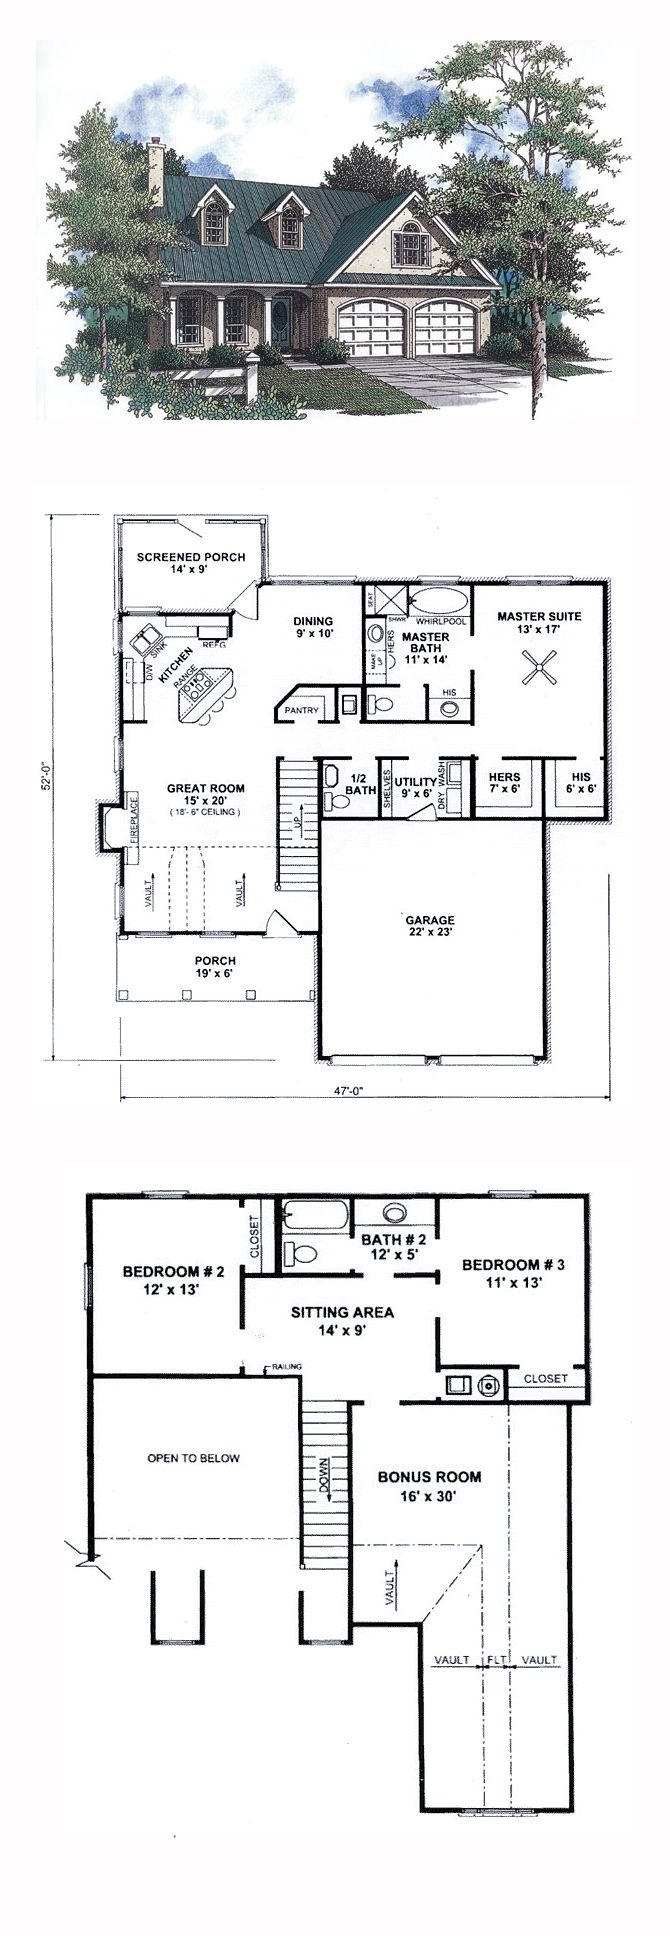 16 best country house plans images on pinterest country houses country style cool house plan id chp 14541 total living area 1815